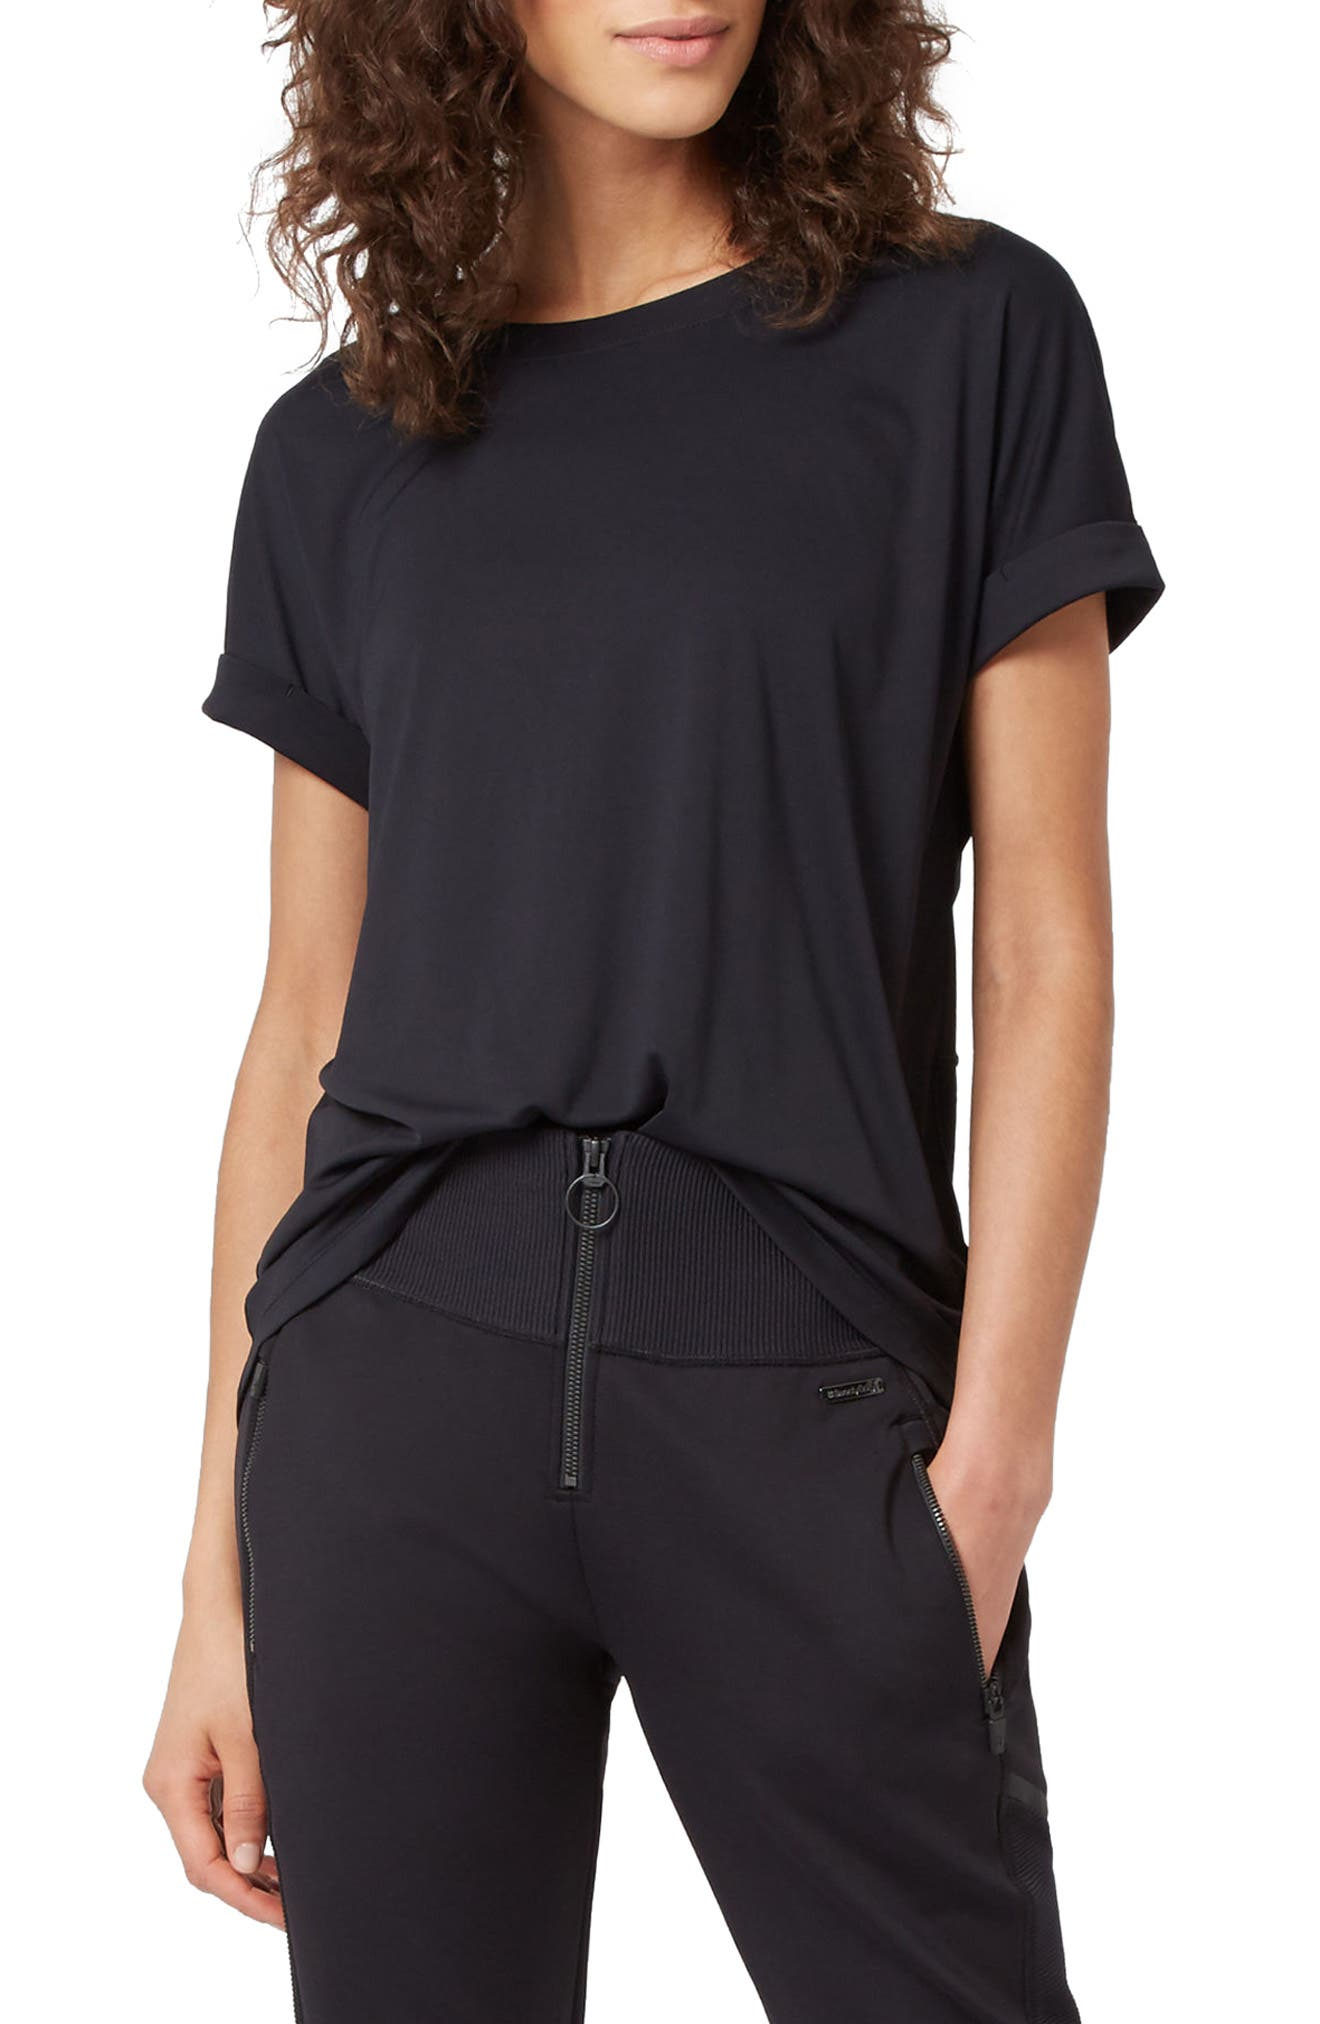 Ab Crunch Tee,                         Main,                         color, Black